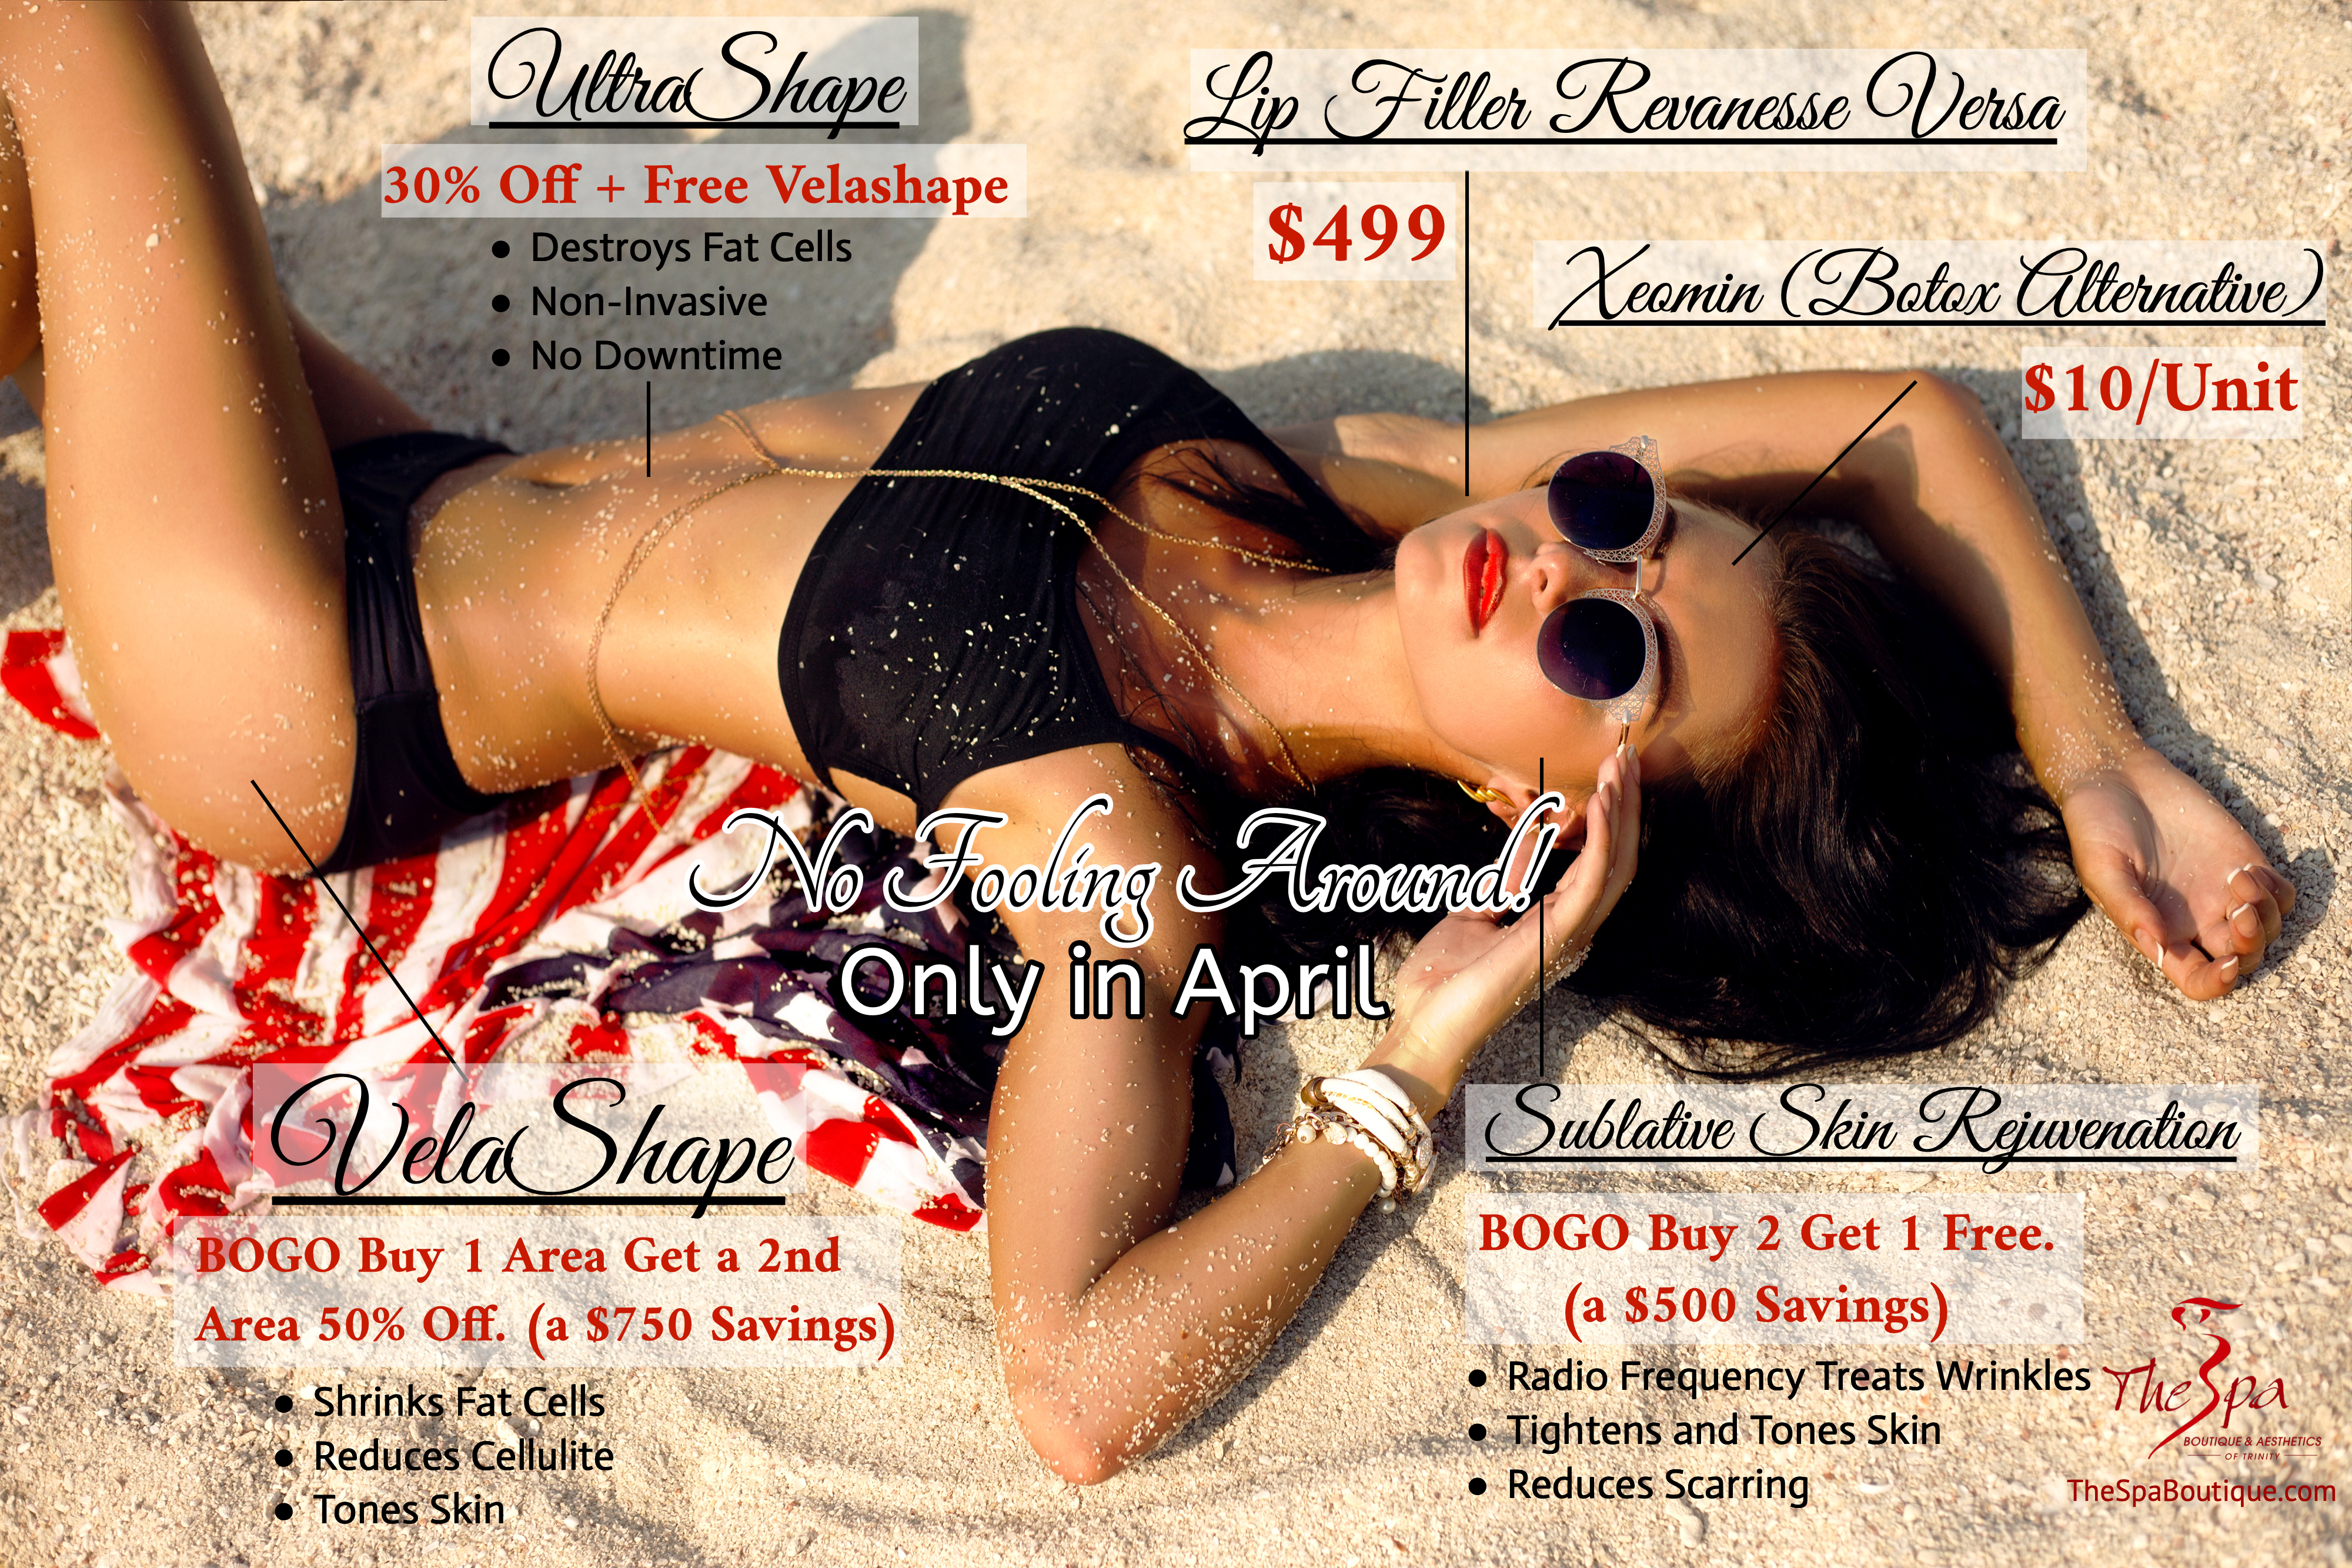 Limited Time April Specials